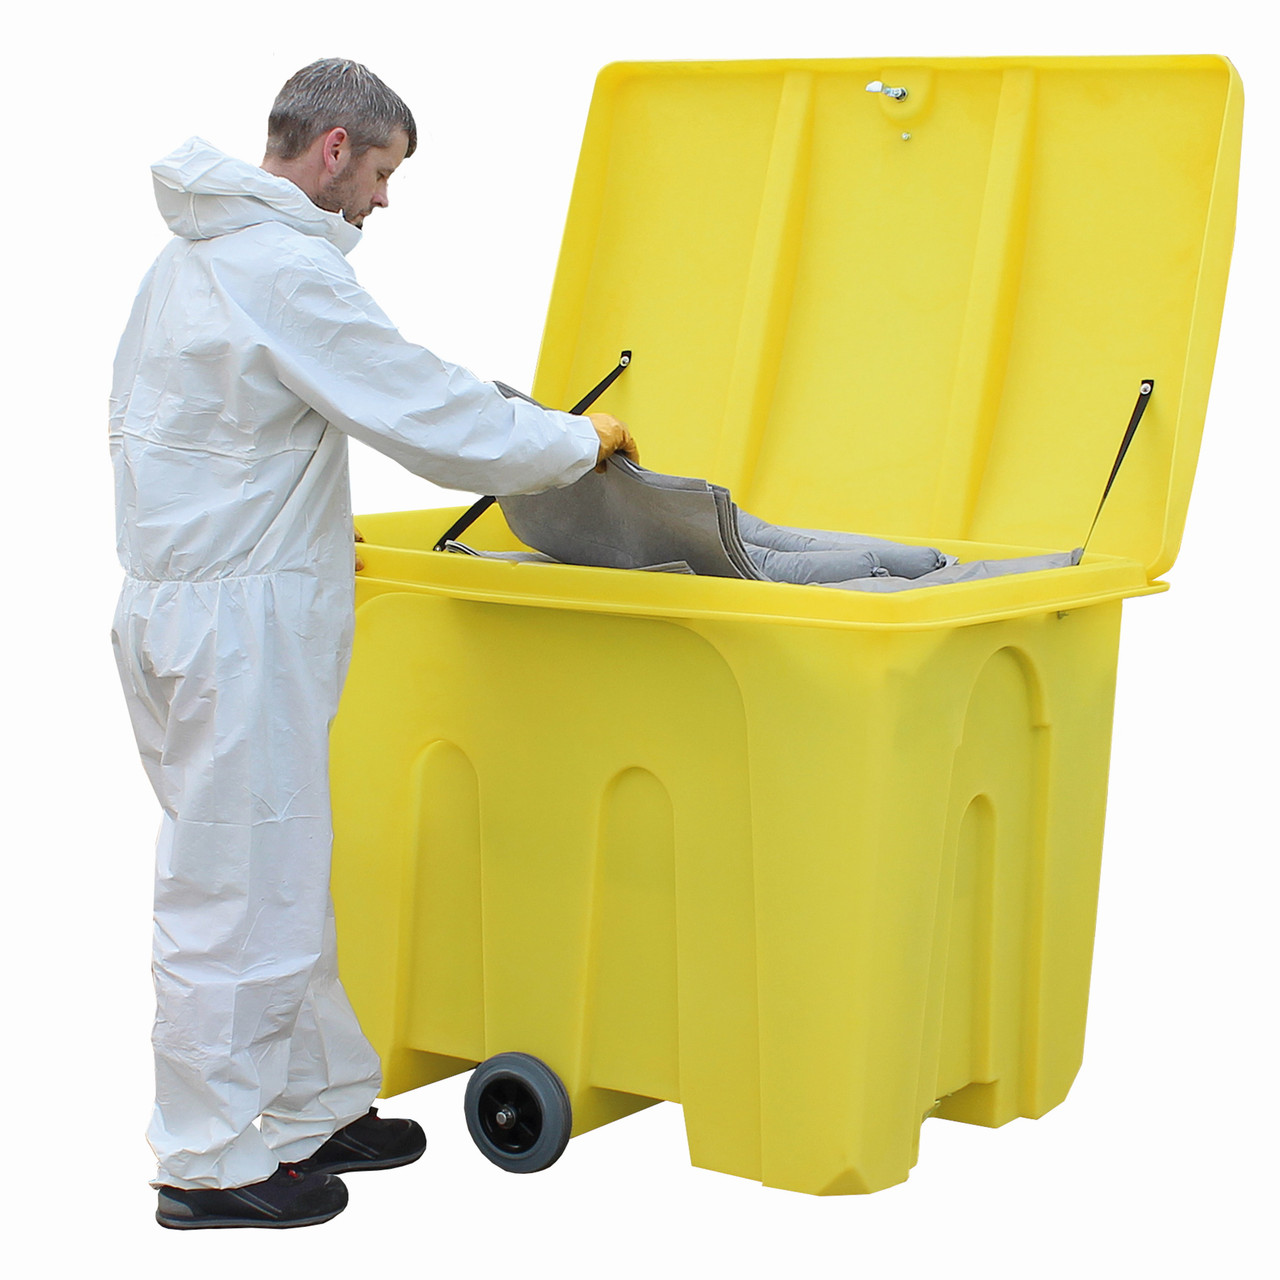 PSB2W 1000ltr General Storage Container Bin On Wheels